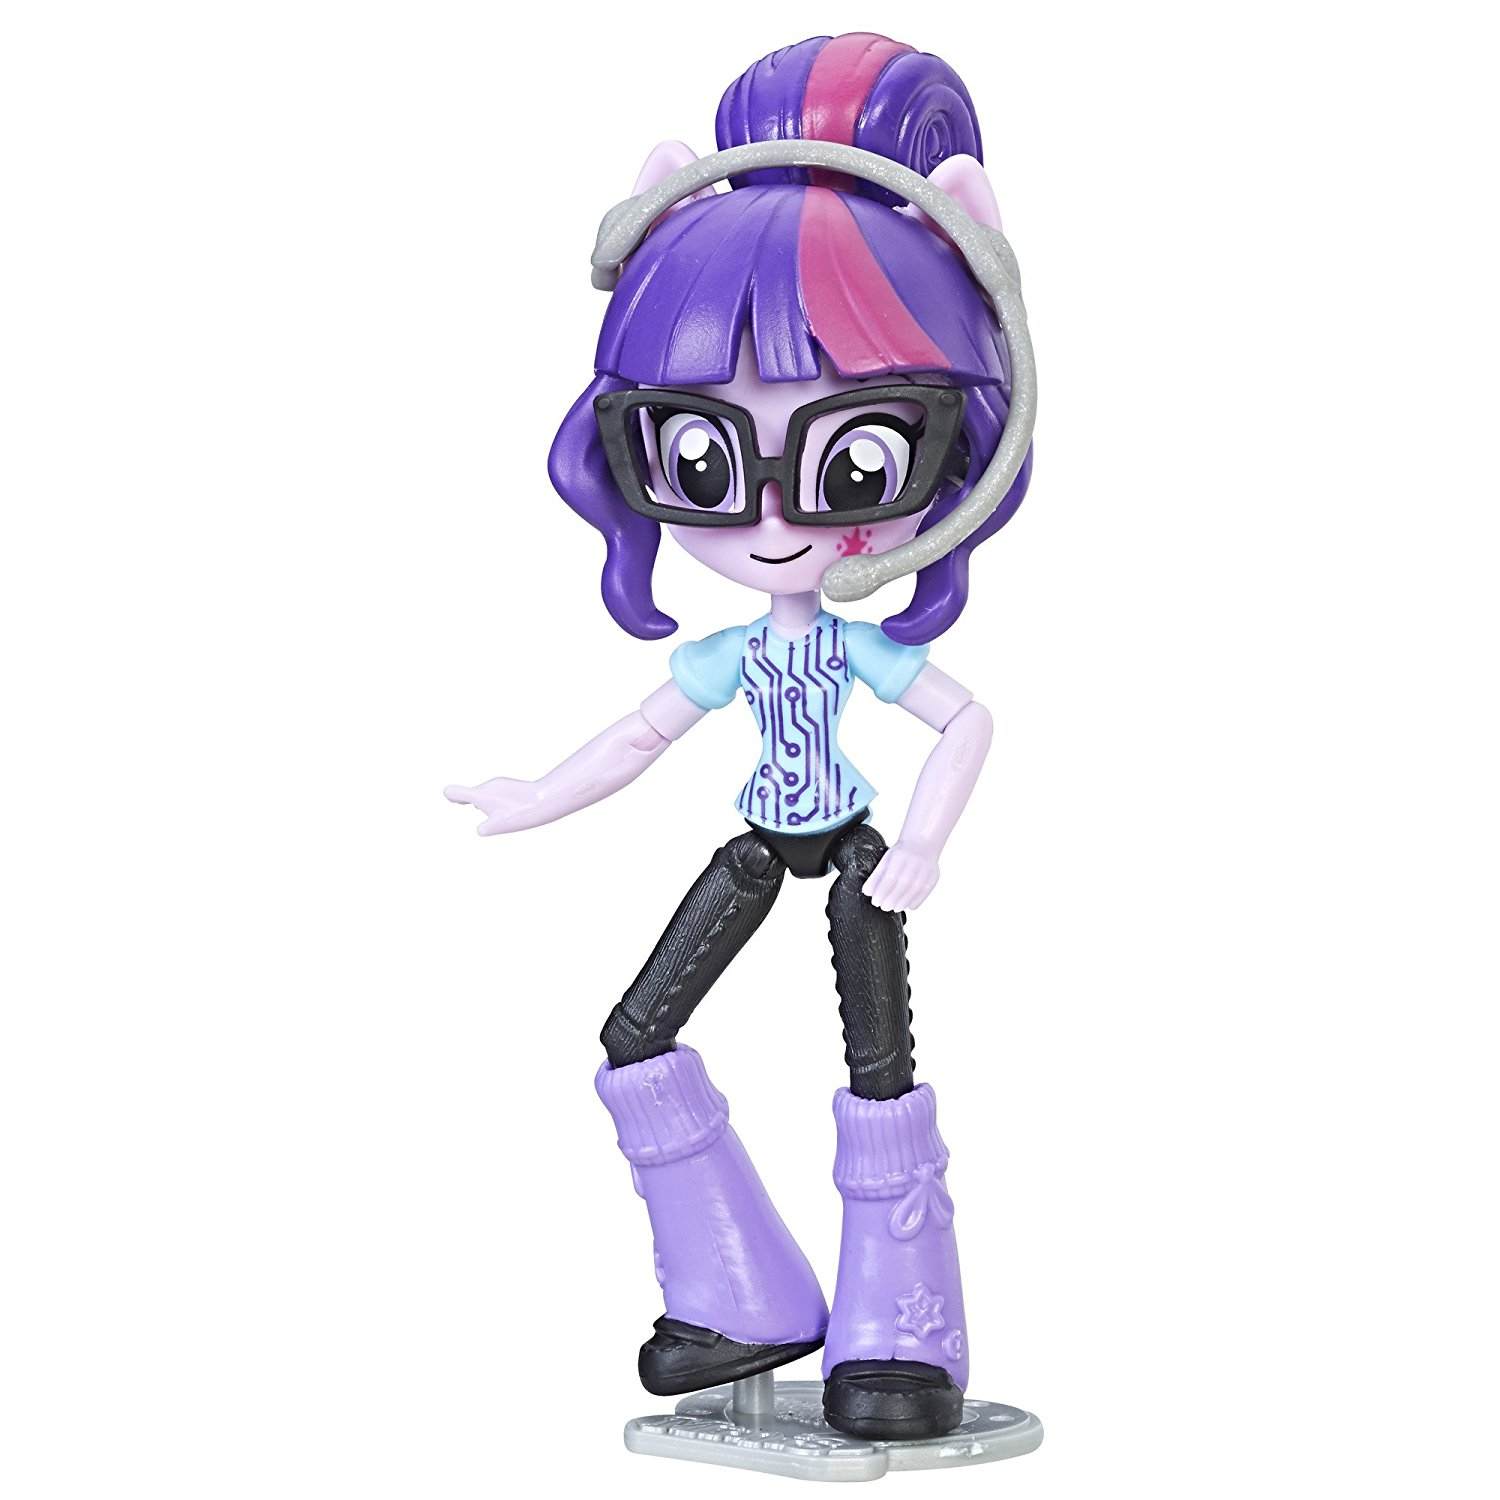 Equestria Girls Mall Collection Twilight Sparkle, Poseable with 9 points of articulation By My Little Pony